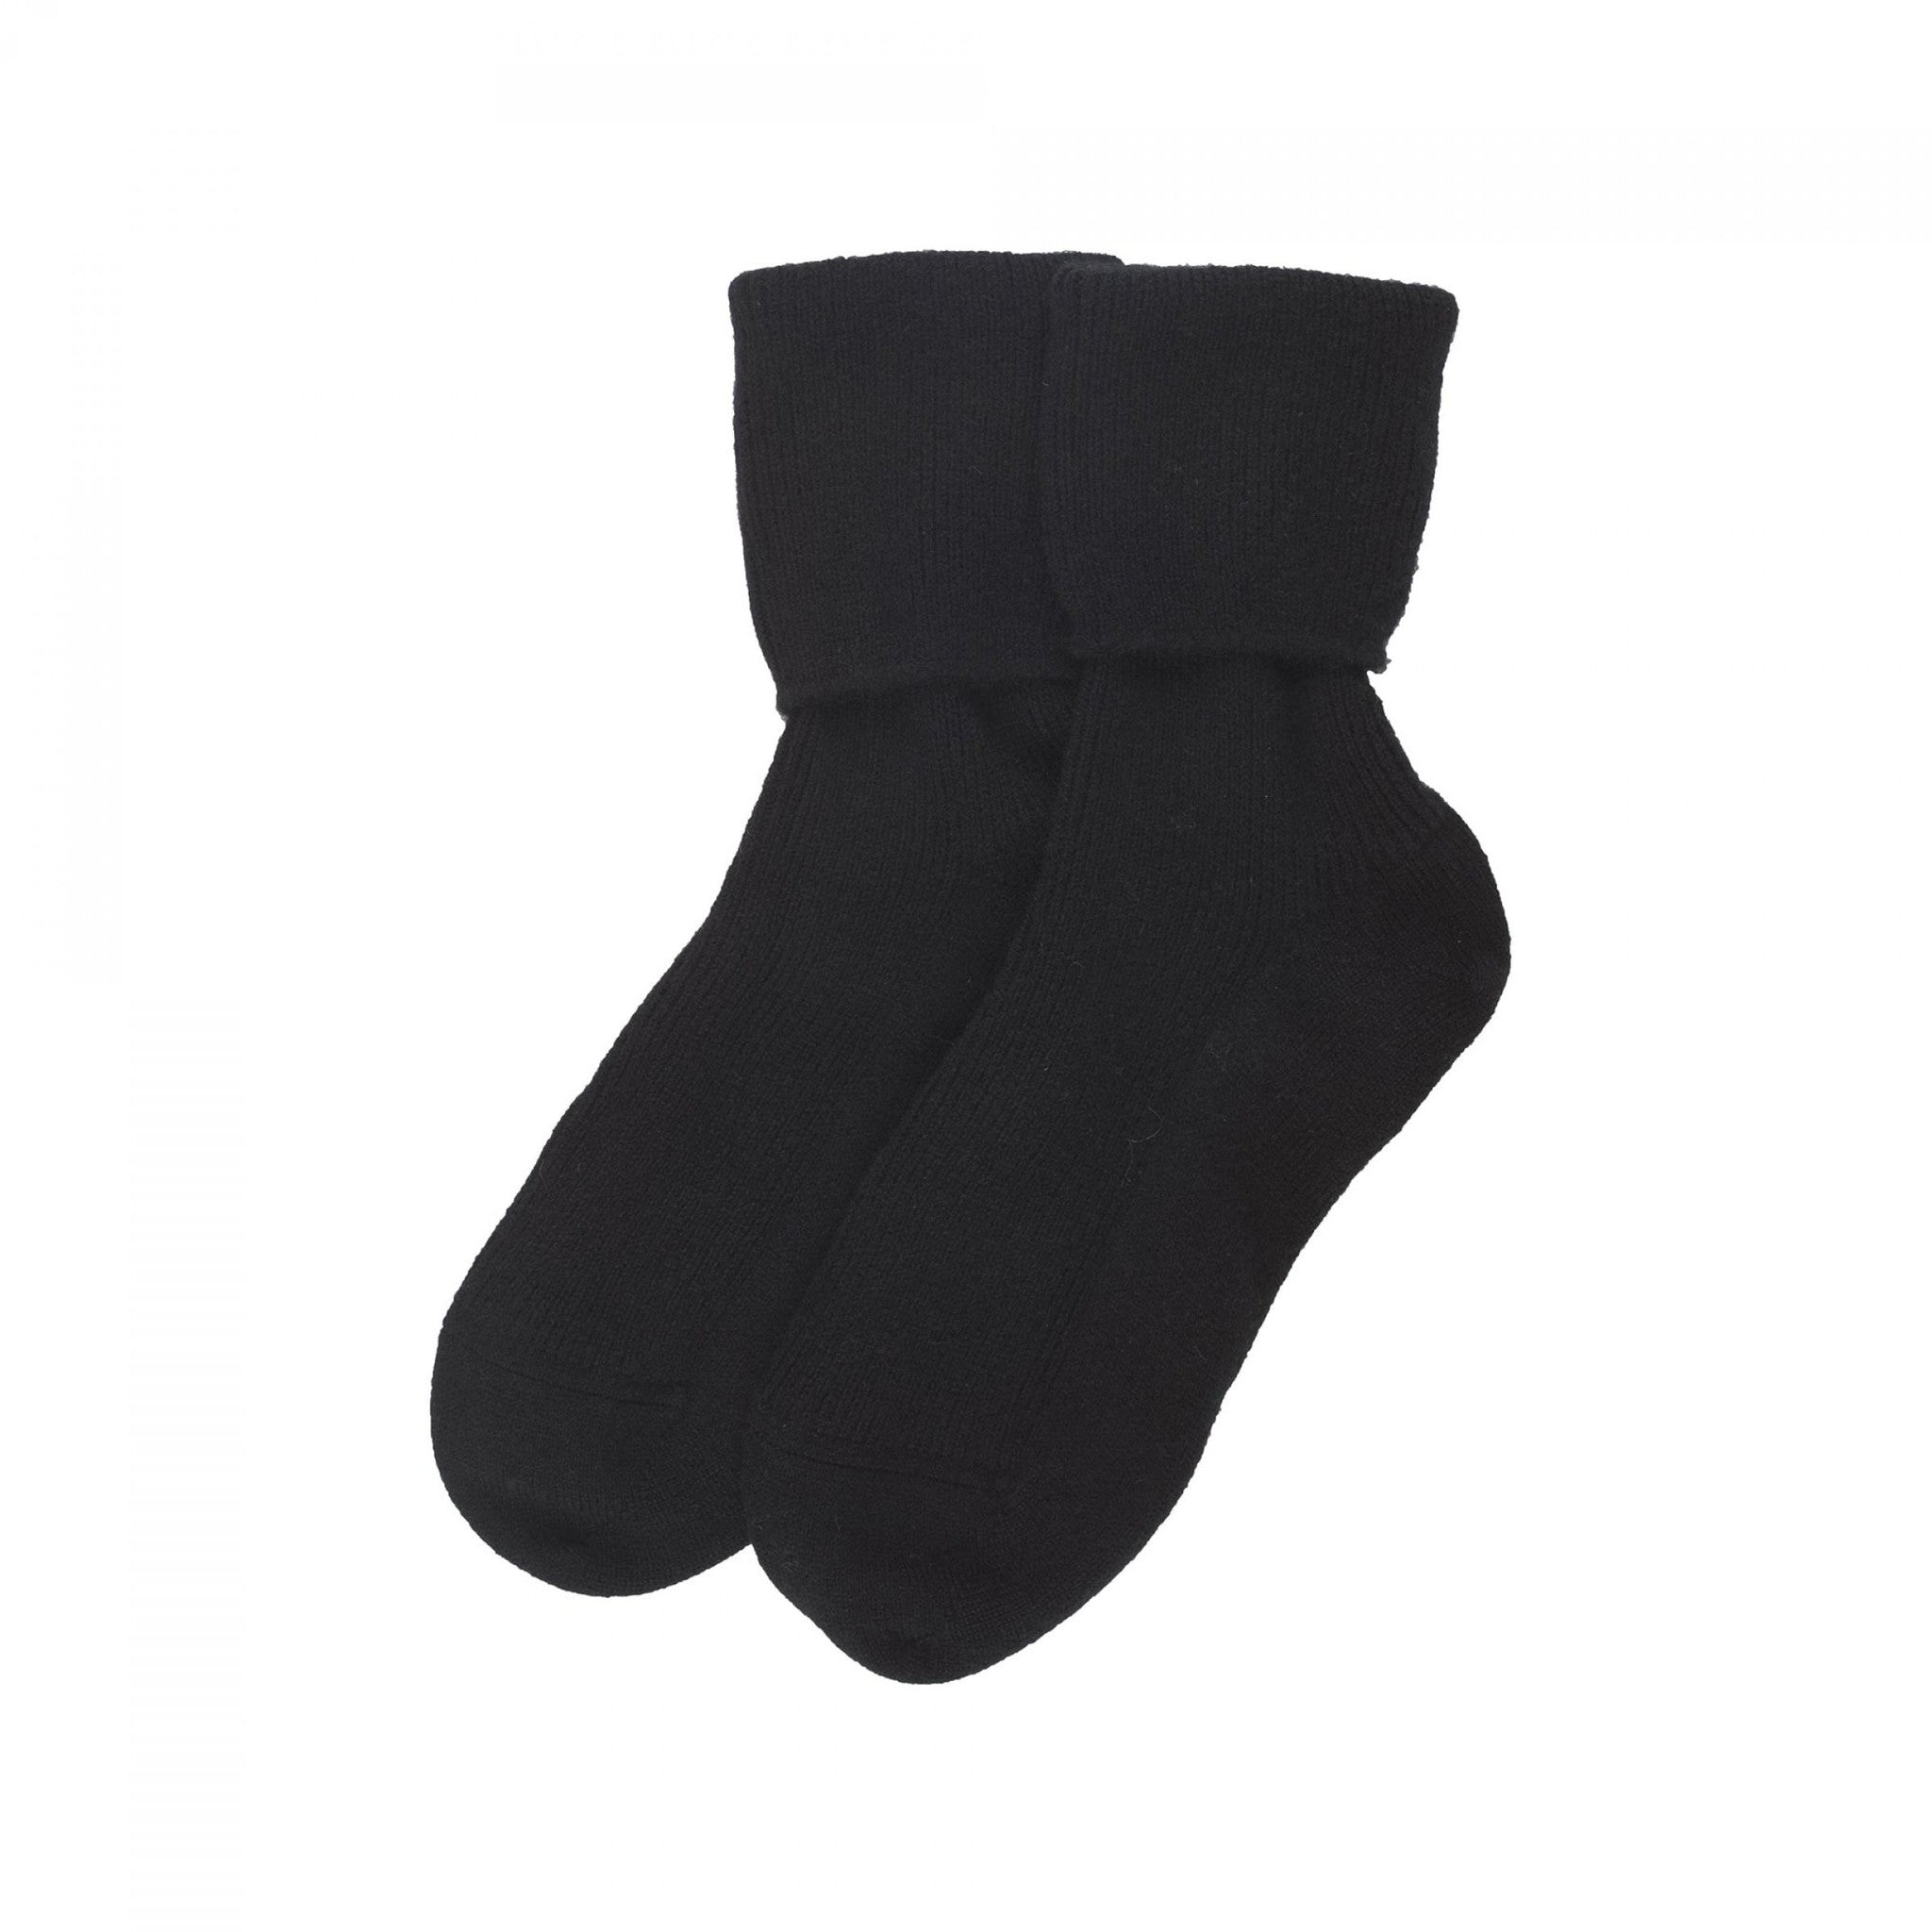 Ladies Black Cashmere Socks | Bed Sock | buy now at The Cashmere Choice London